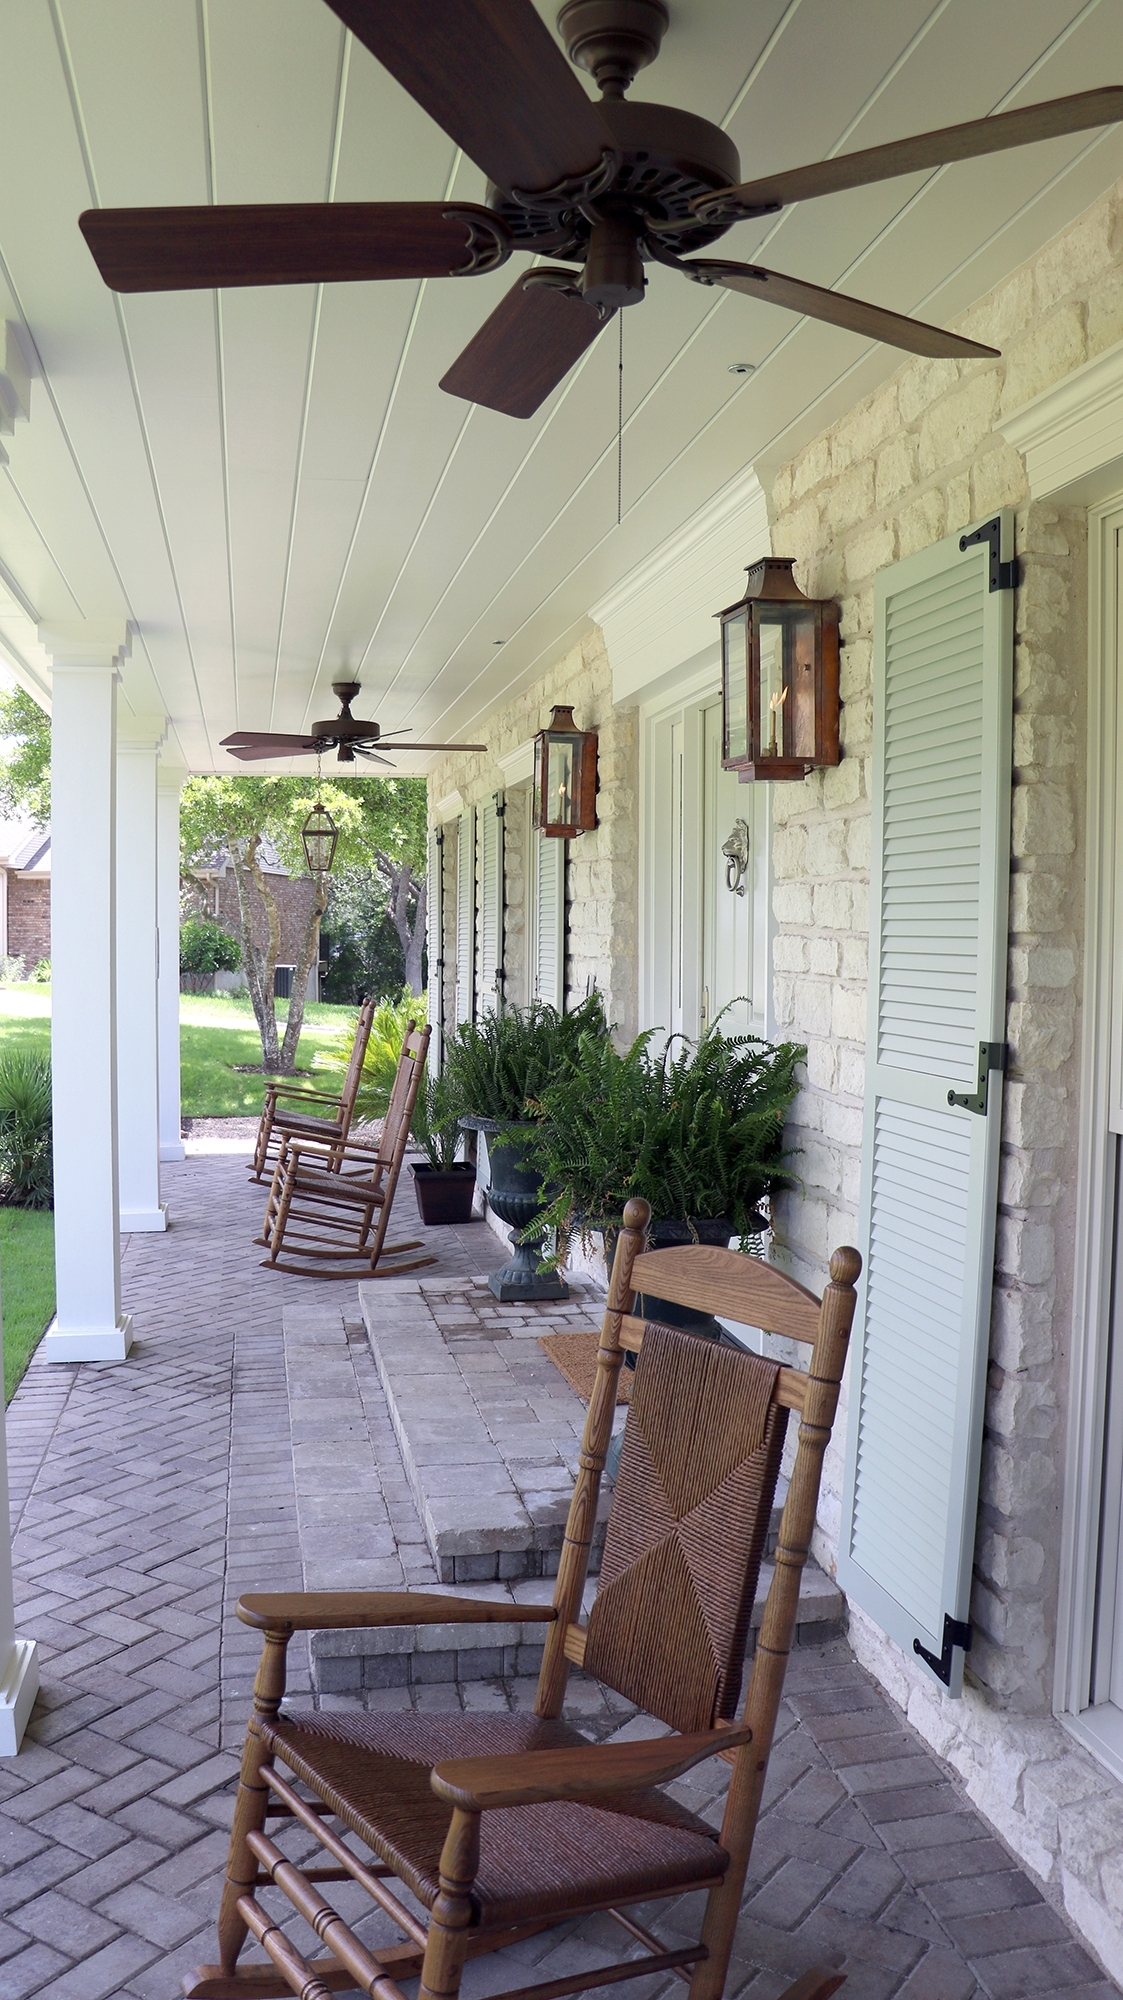 Outdoor Ceiling Fans For Porch Within Most Up To Date Front Porch 4 Hunter Original Outdoor Ceiling Fan – Hunter Fan Blog (View 12 of 20)